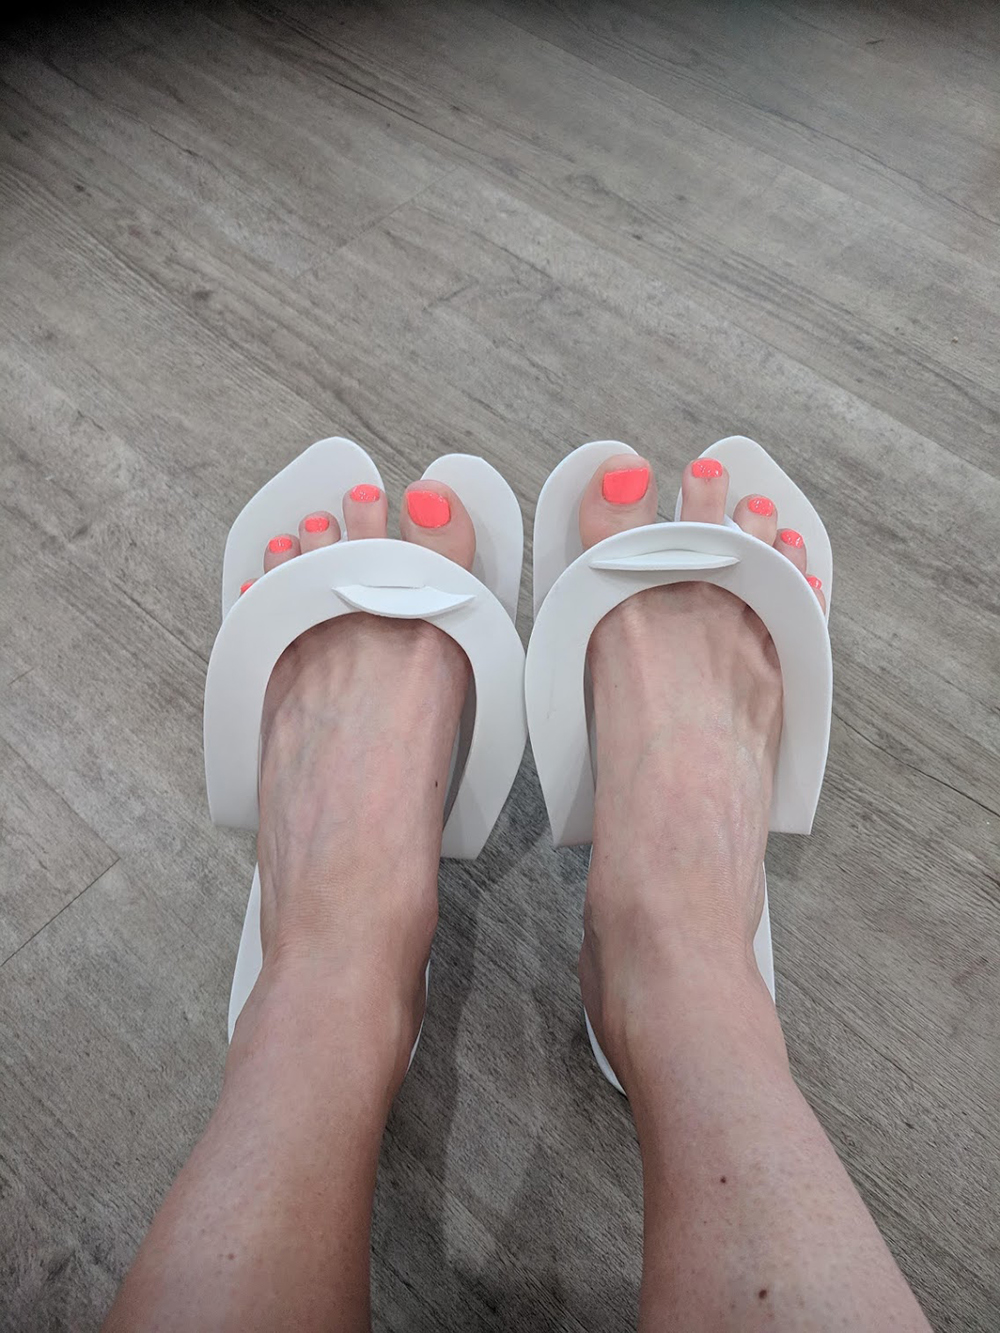 When your feet look and feel great post-pedicure, you need to document it!